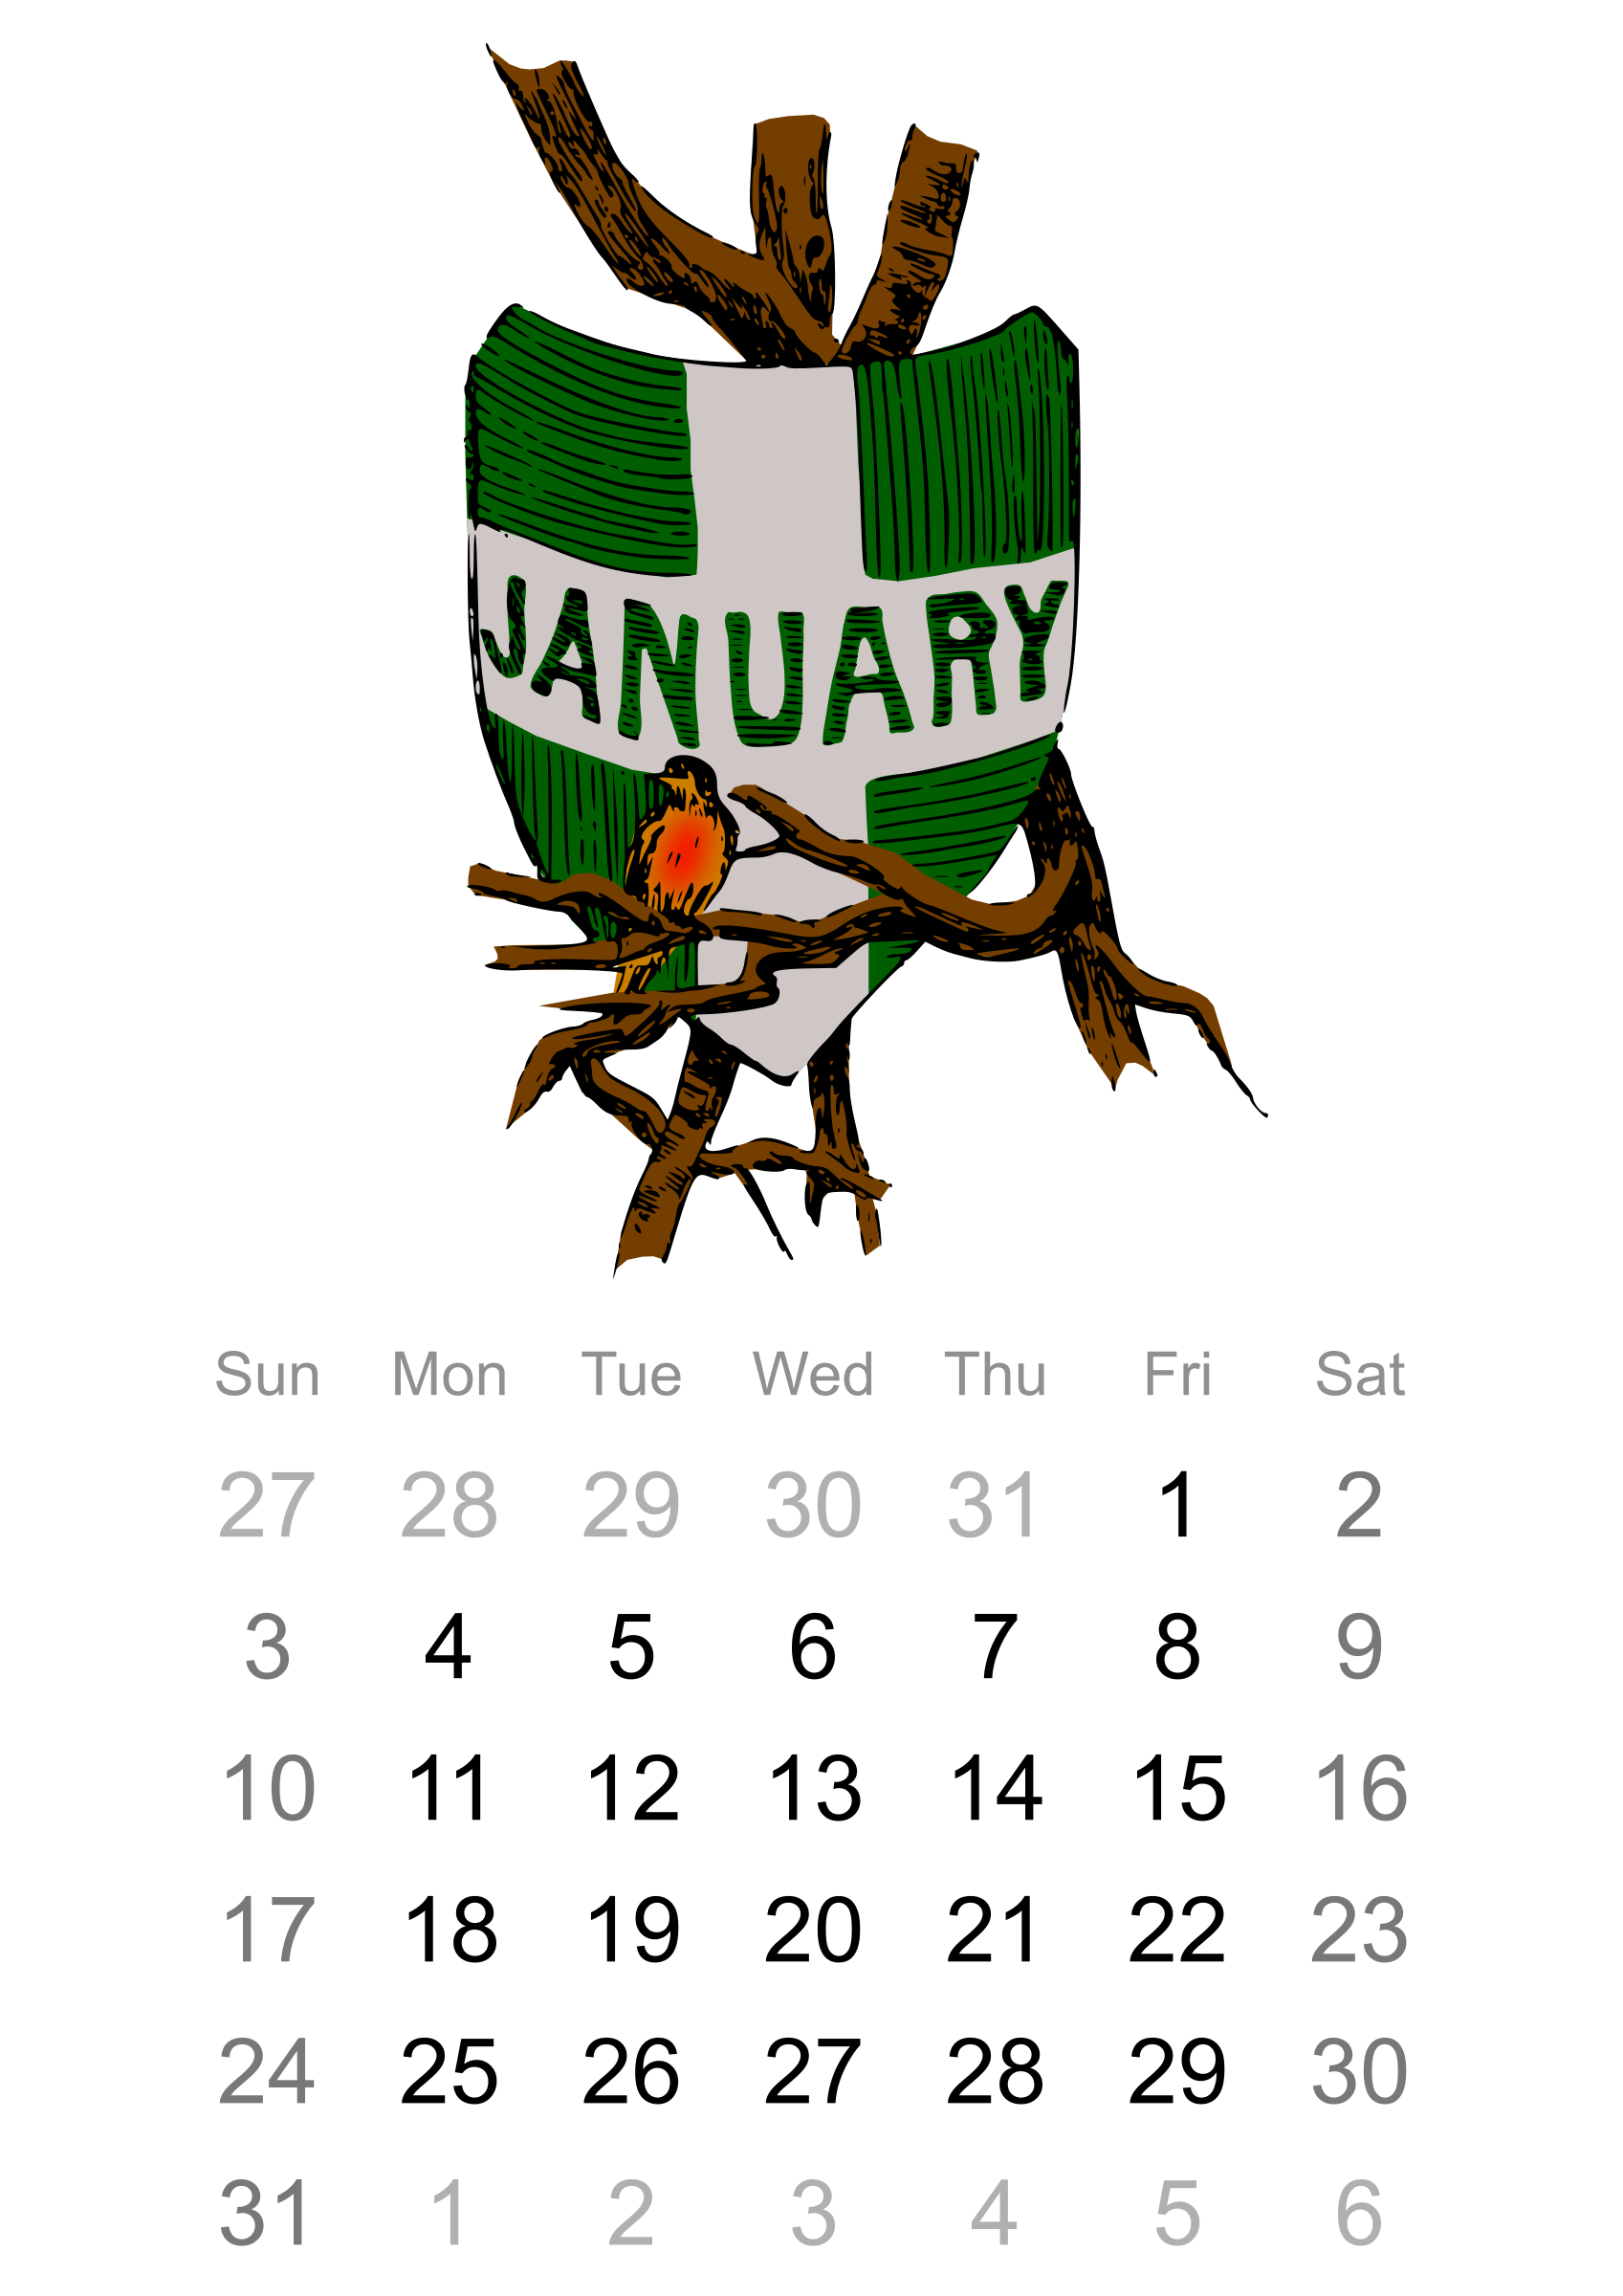 2016 January calendar by Firkin